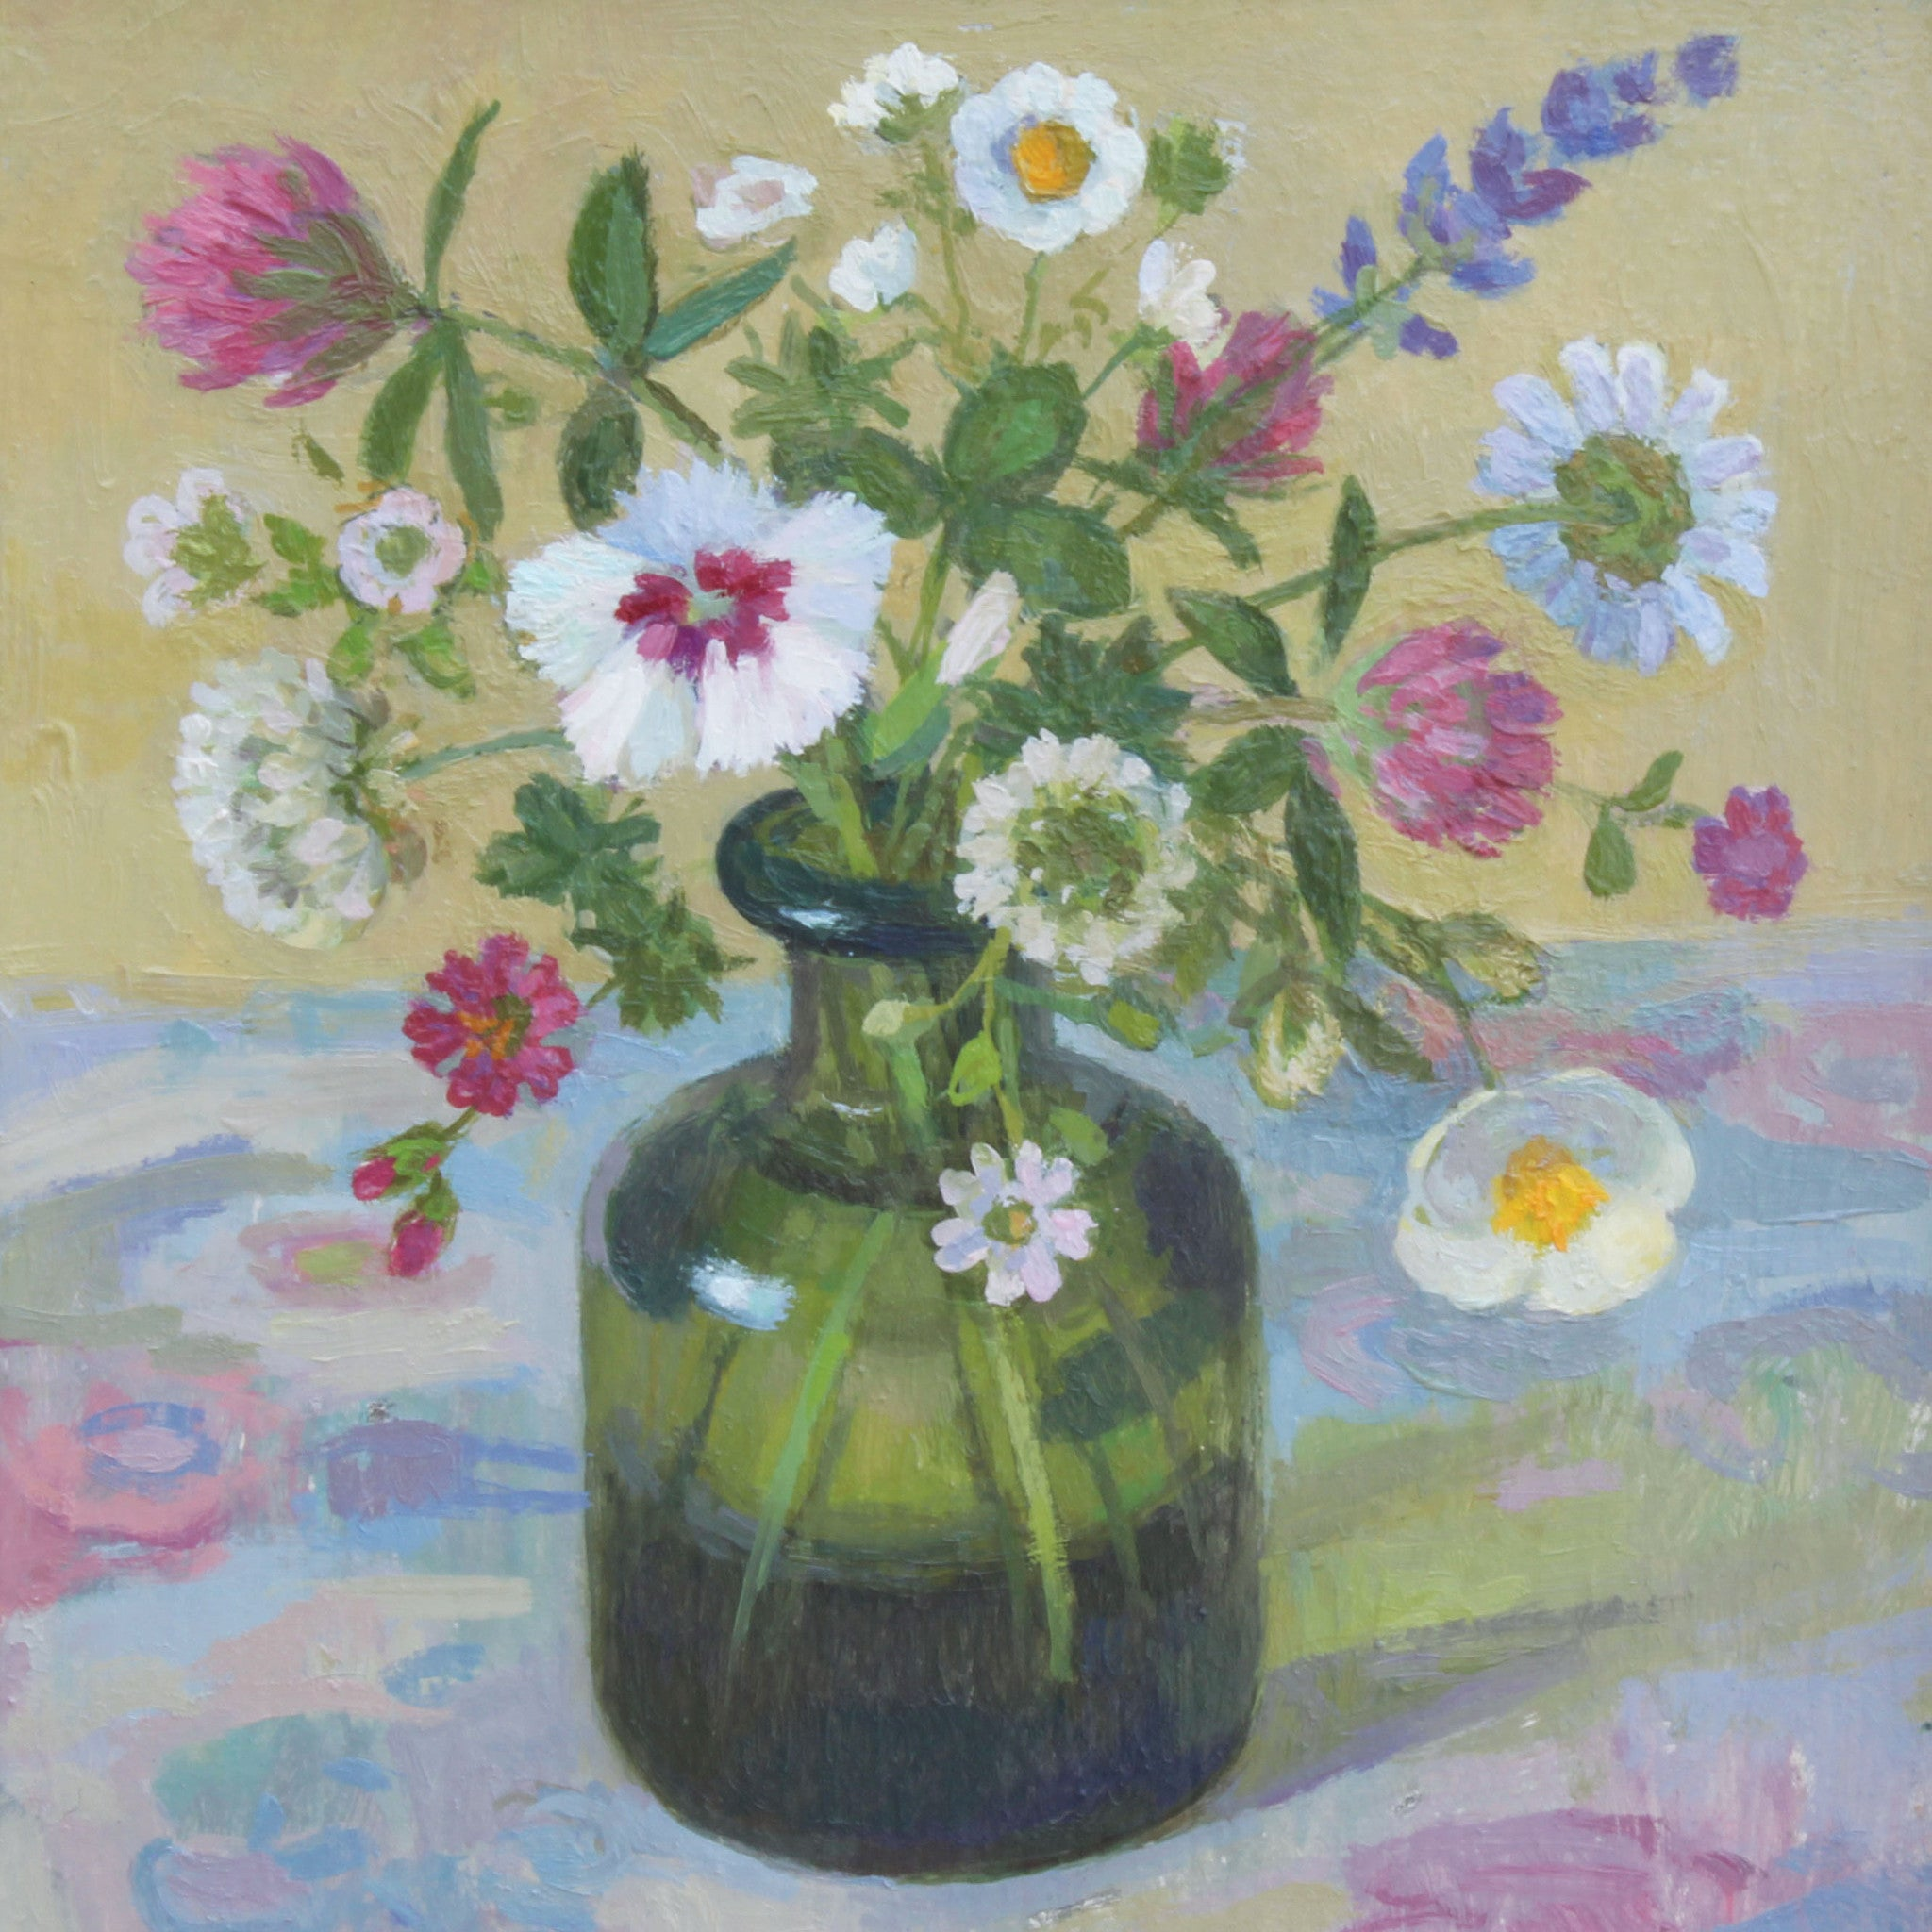 Summer Flowers by Diana Calvert, Fine Art Greeting Card, DRP Award, Oil painting, Green vase with summer flowers